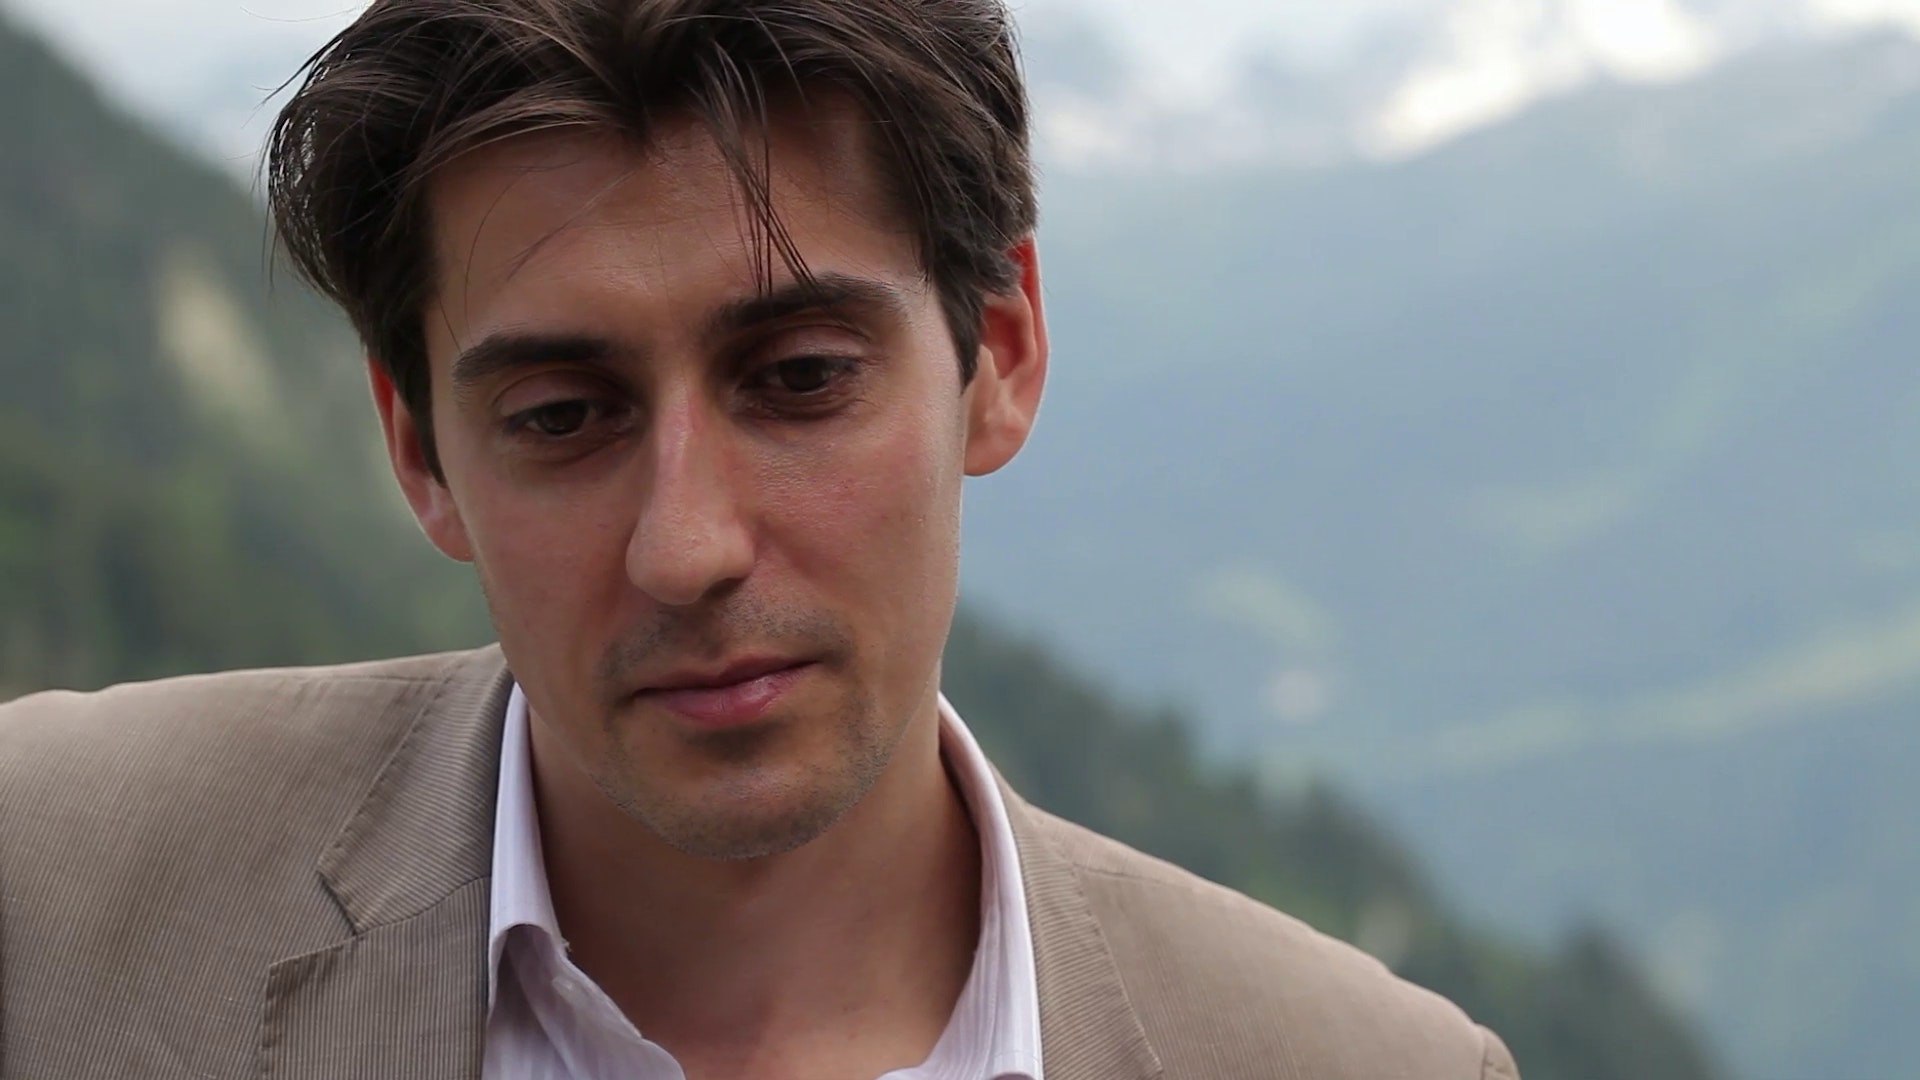 Yevgeny Sudbin: Interview